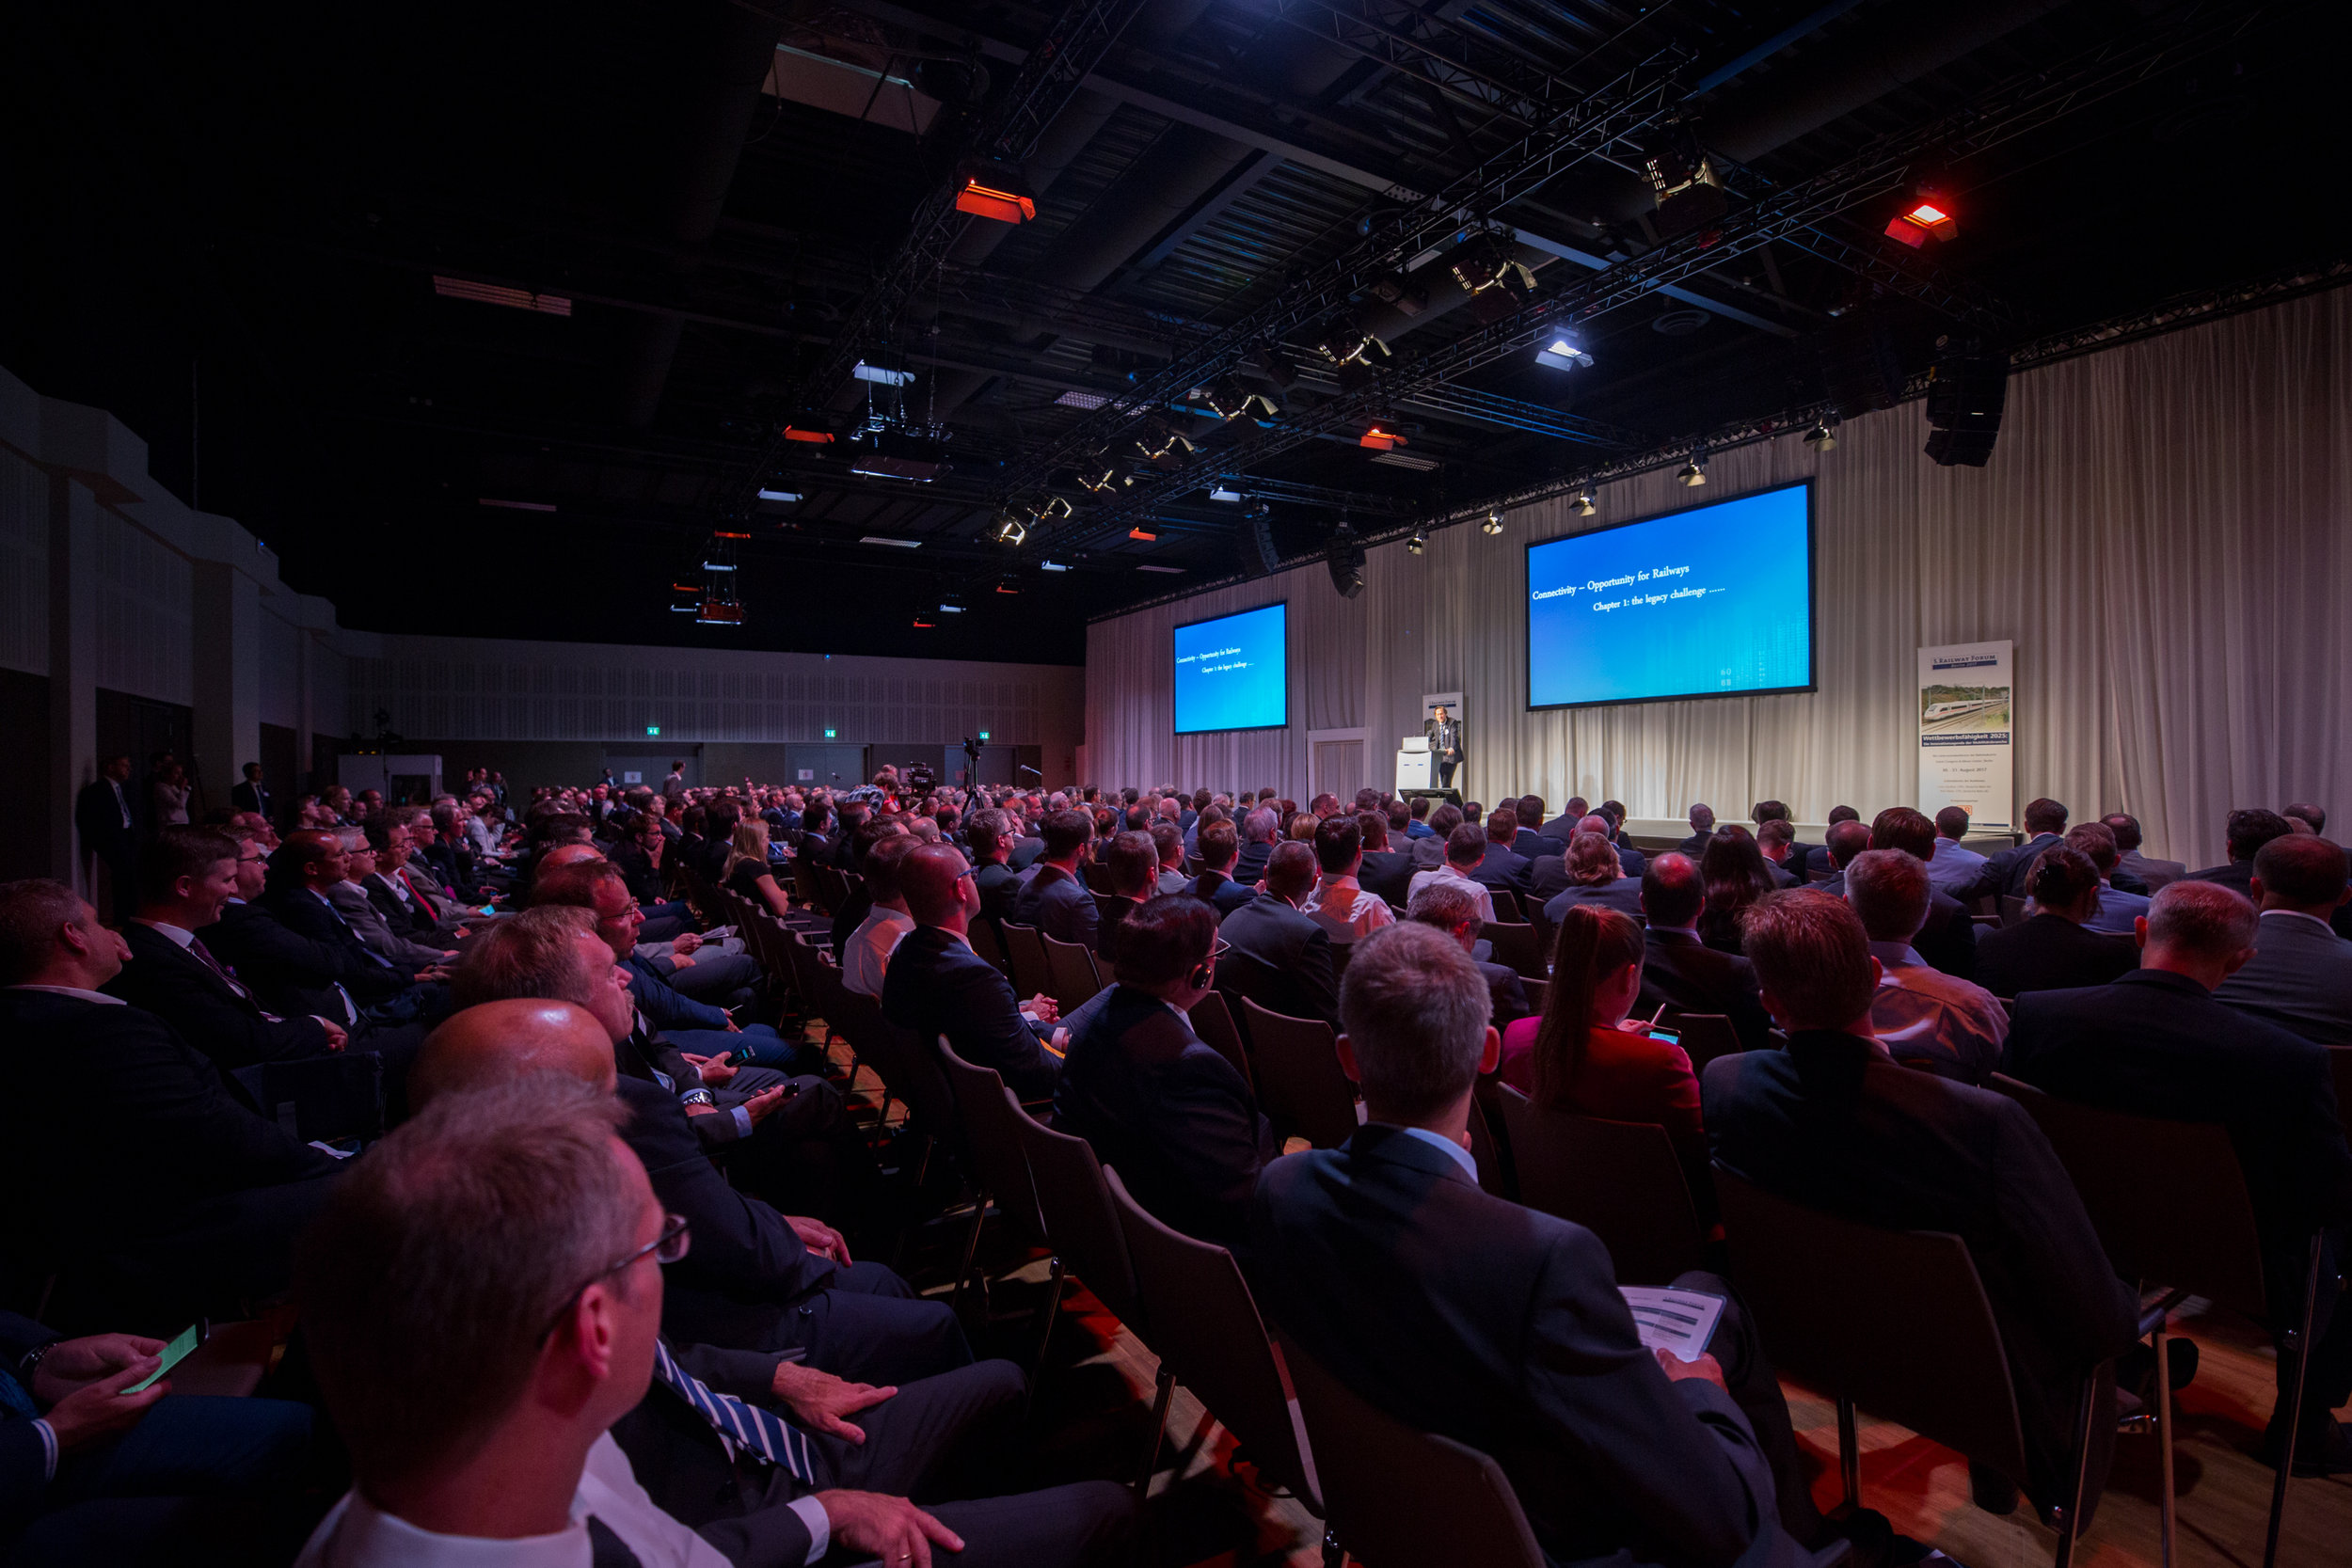 RAILWAY FORUM Berlin - Keynotes, Master Classes, Panel Discussions